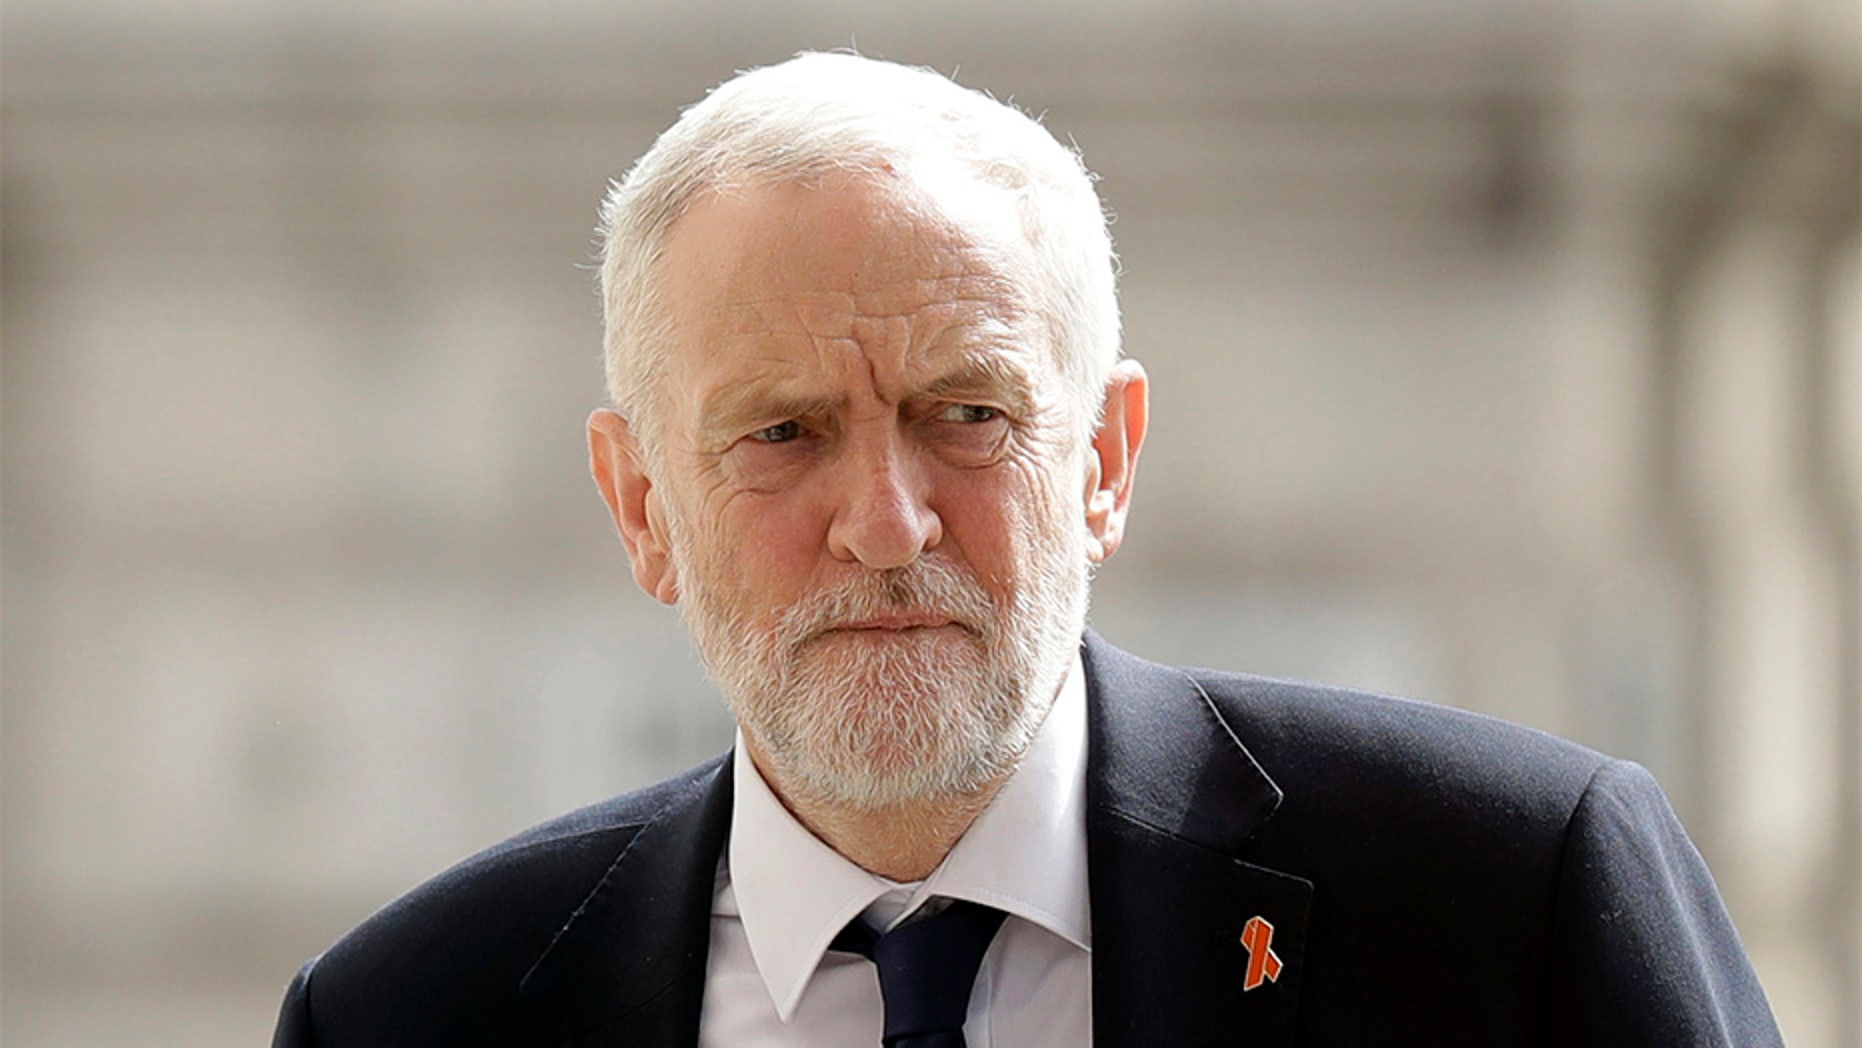 Britain's opposition Labour party leader Jeremy Corbyn was ripped by Israel Monday after photos surfaced showing him laying a wreath at the grave site of a terrorist group behind the 1972 Munich Olympics attacks.